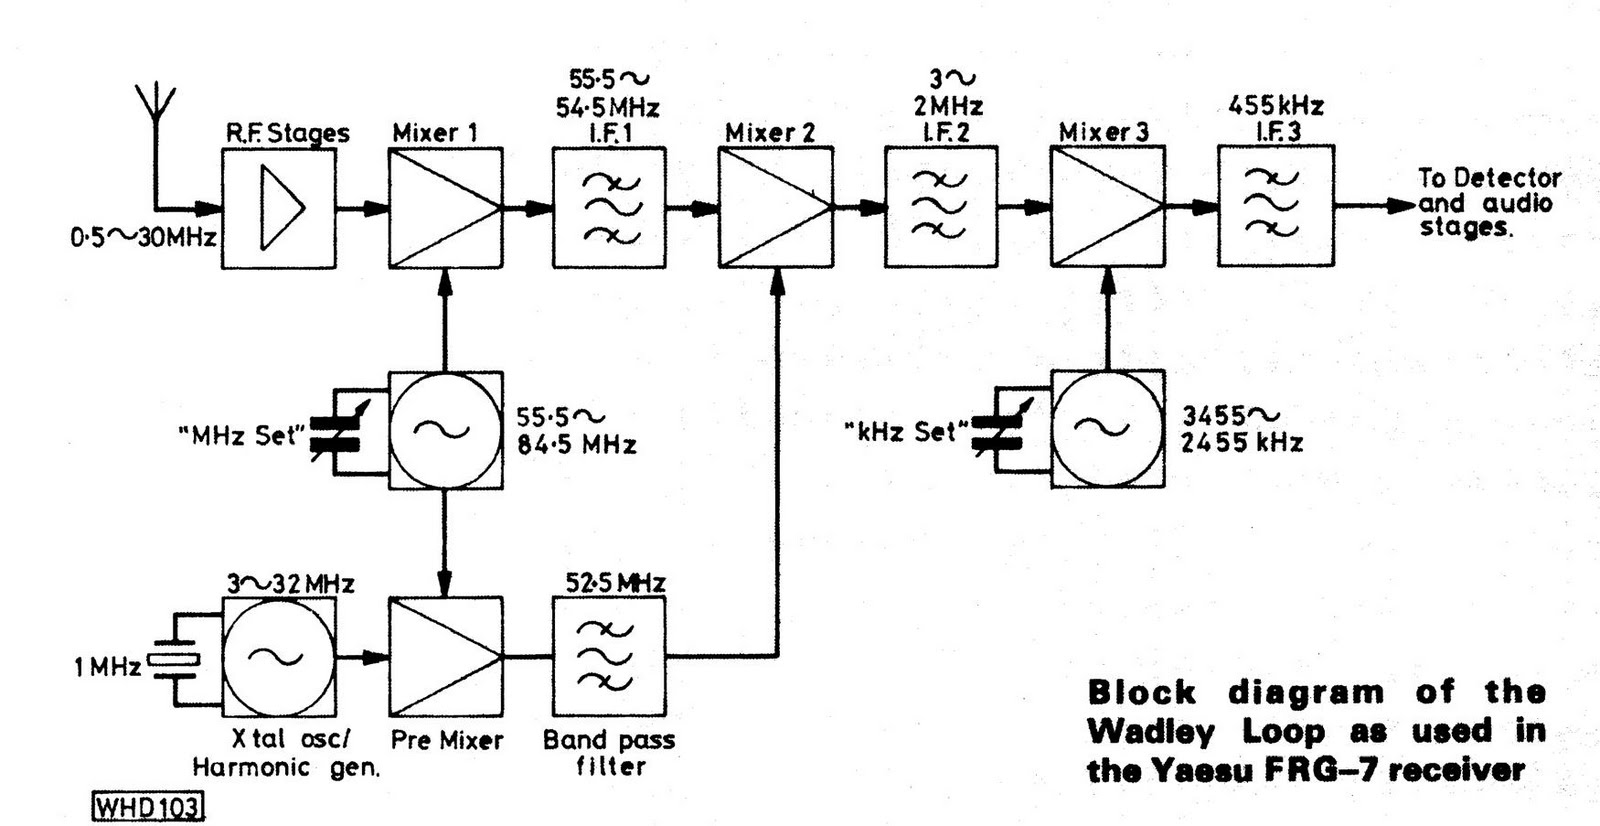 hight resolution of in many wadley loop receivers if2 is fixed tuned with a 1 mhz passband but in the frg 7 it is tuned in step with the khz set oscillator